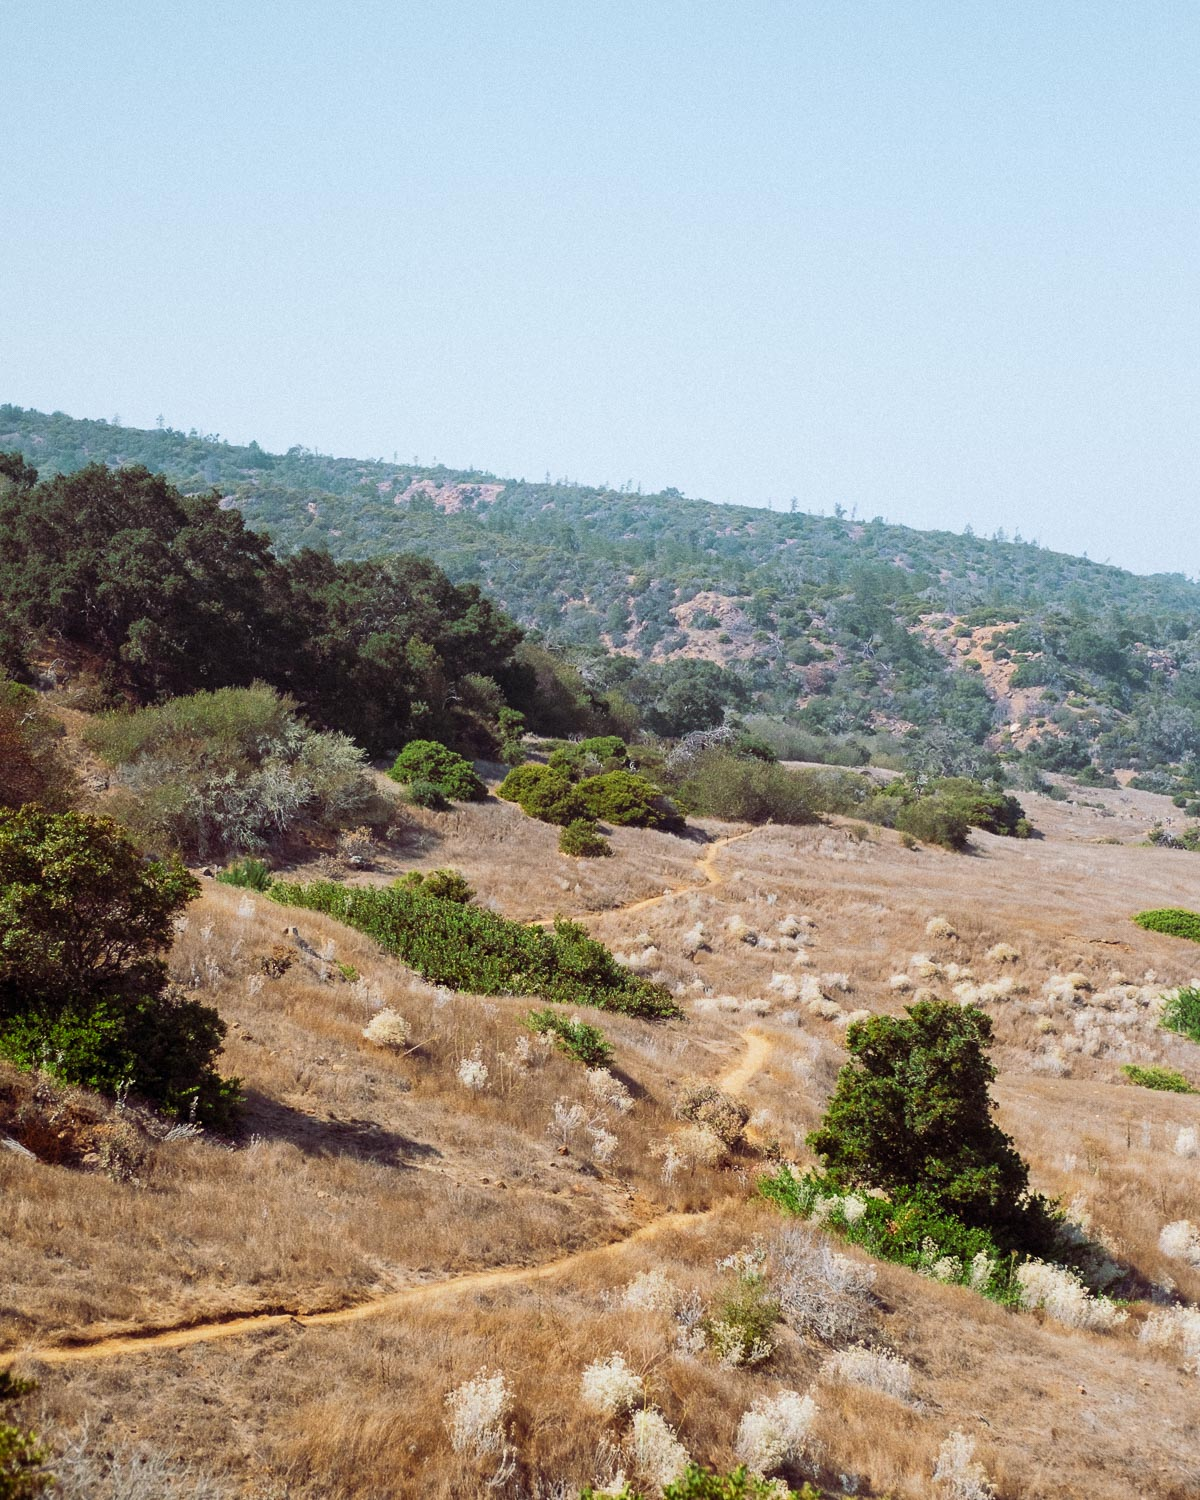 Rachel Off Duty: Hiking Trails at Channel Islands National Park